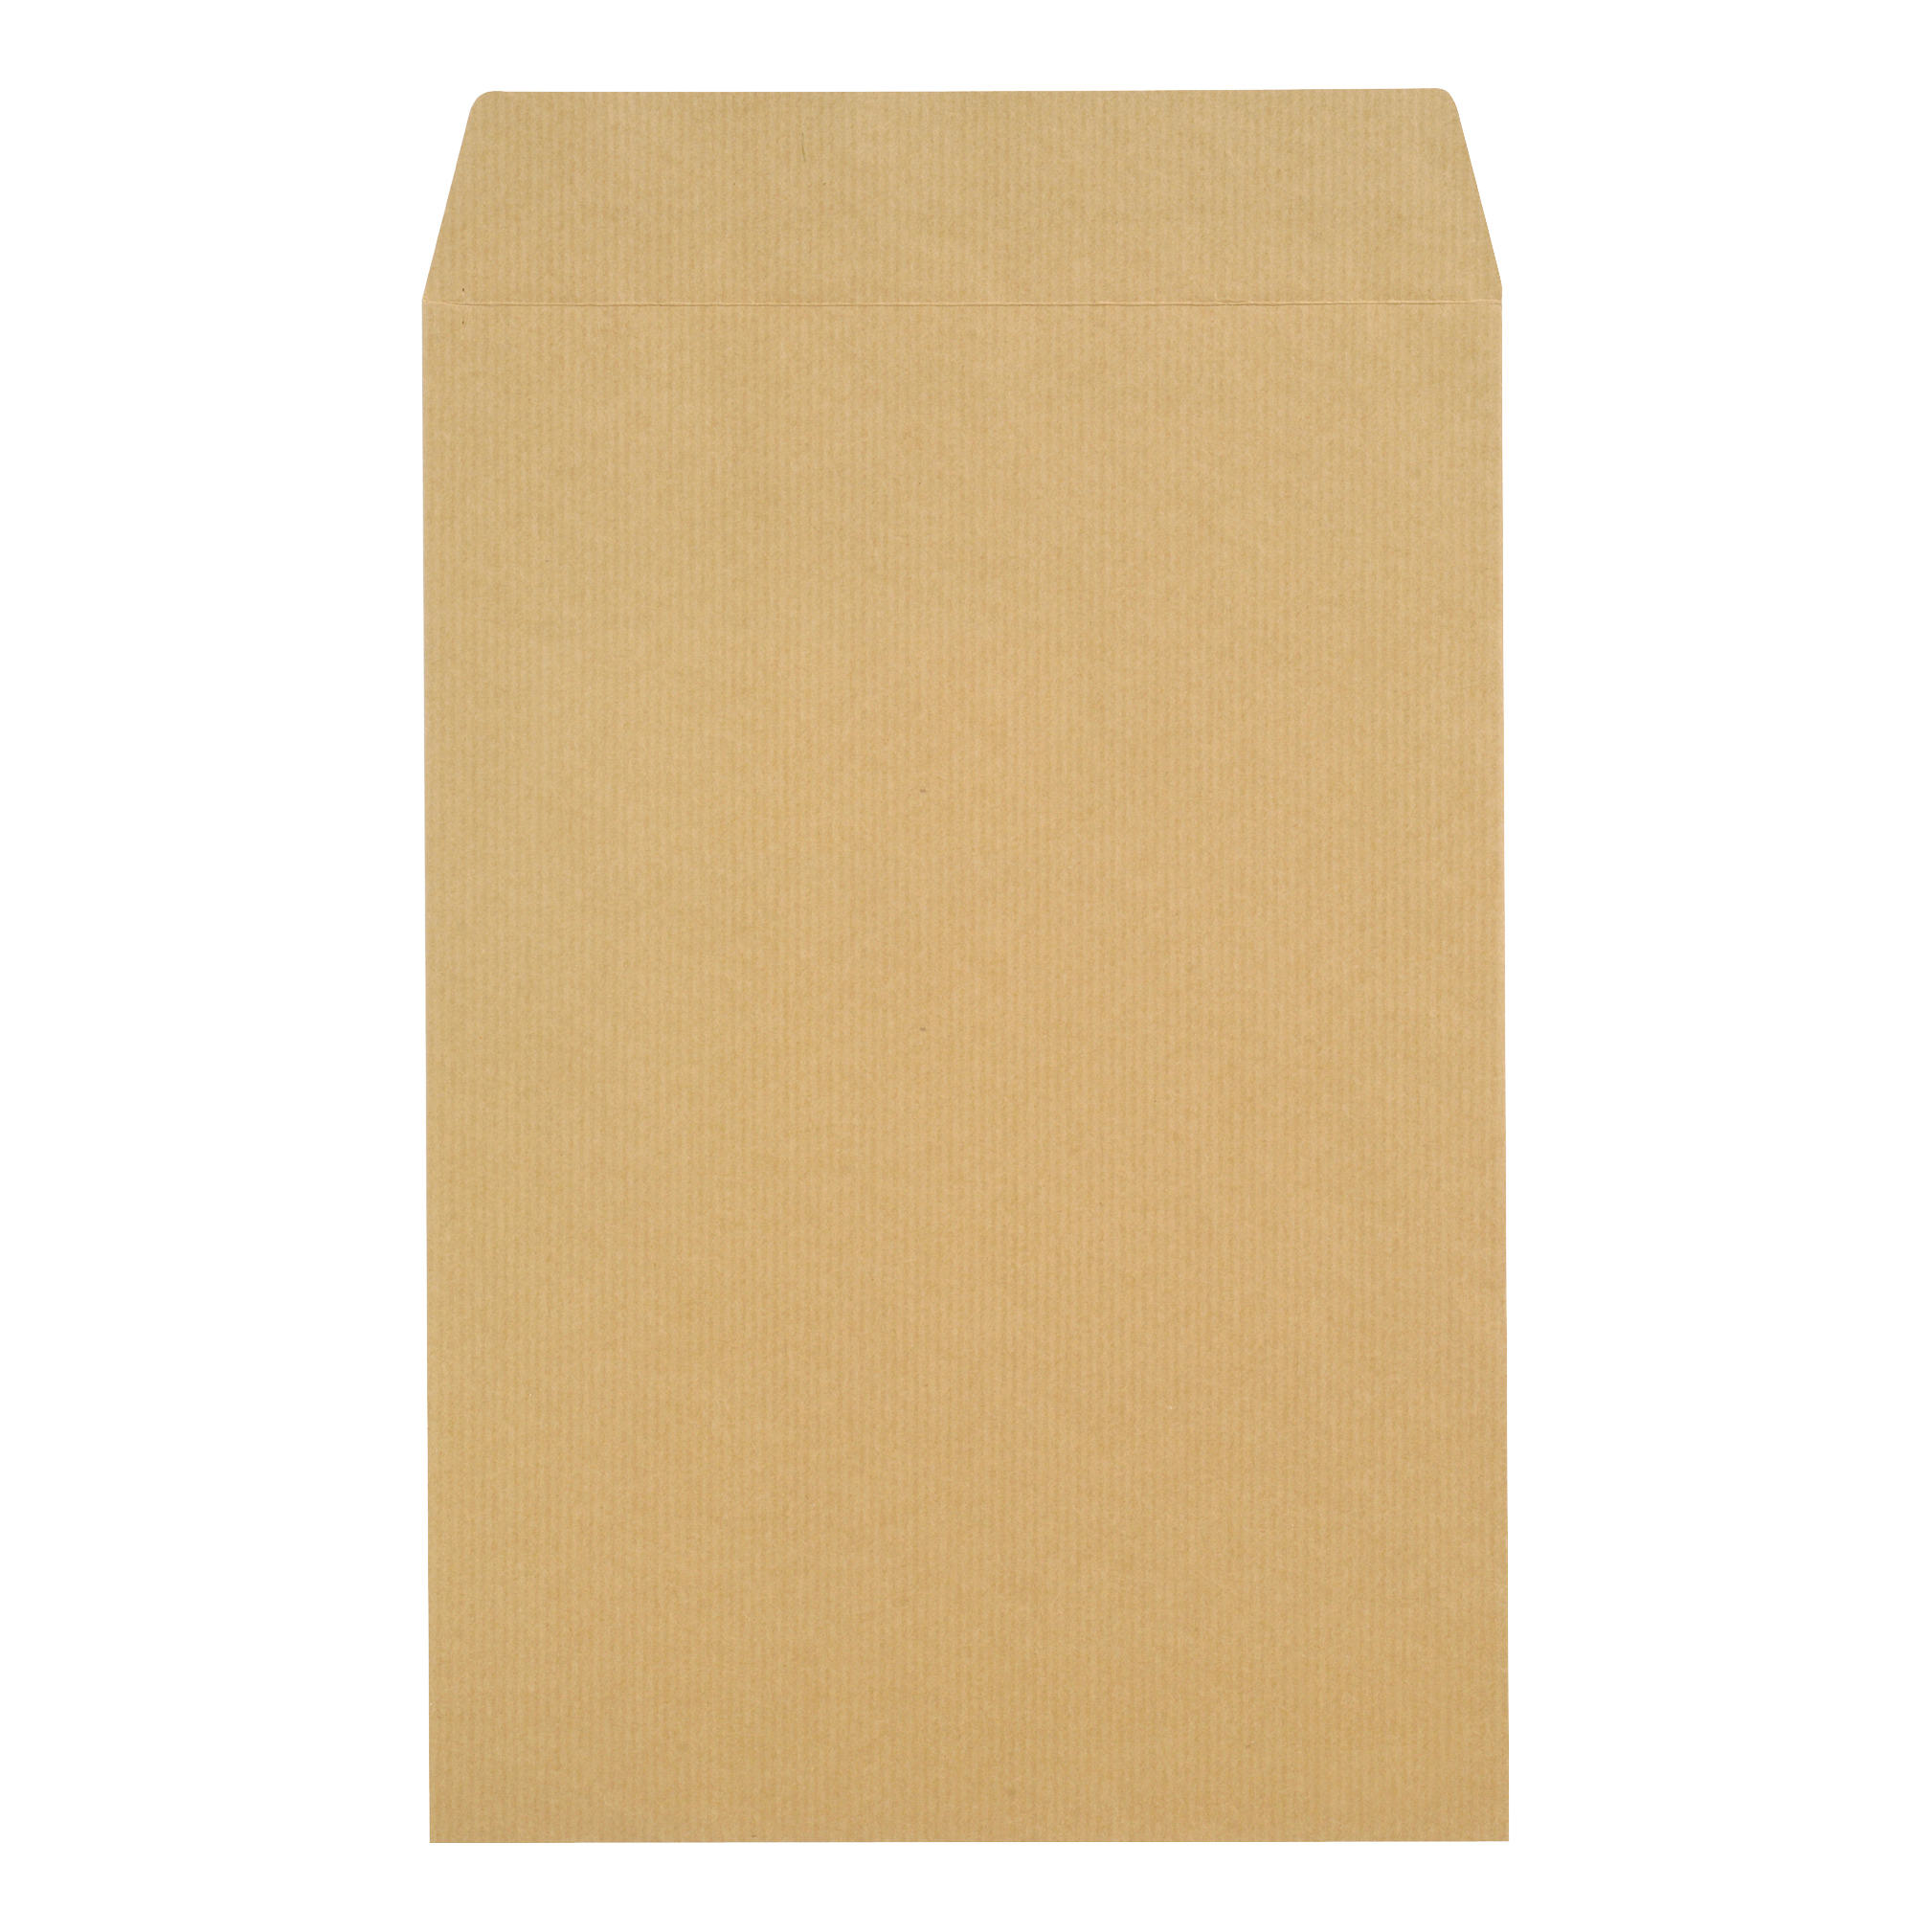 New Guardian Envelopes C4 Pocket Self Seal 130gsm Manilla Ref L26303 [Pack 250]